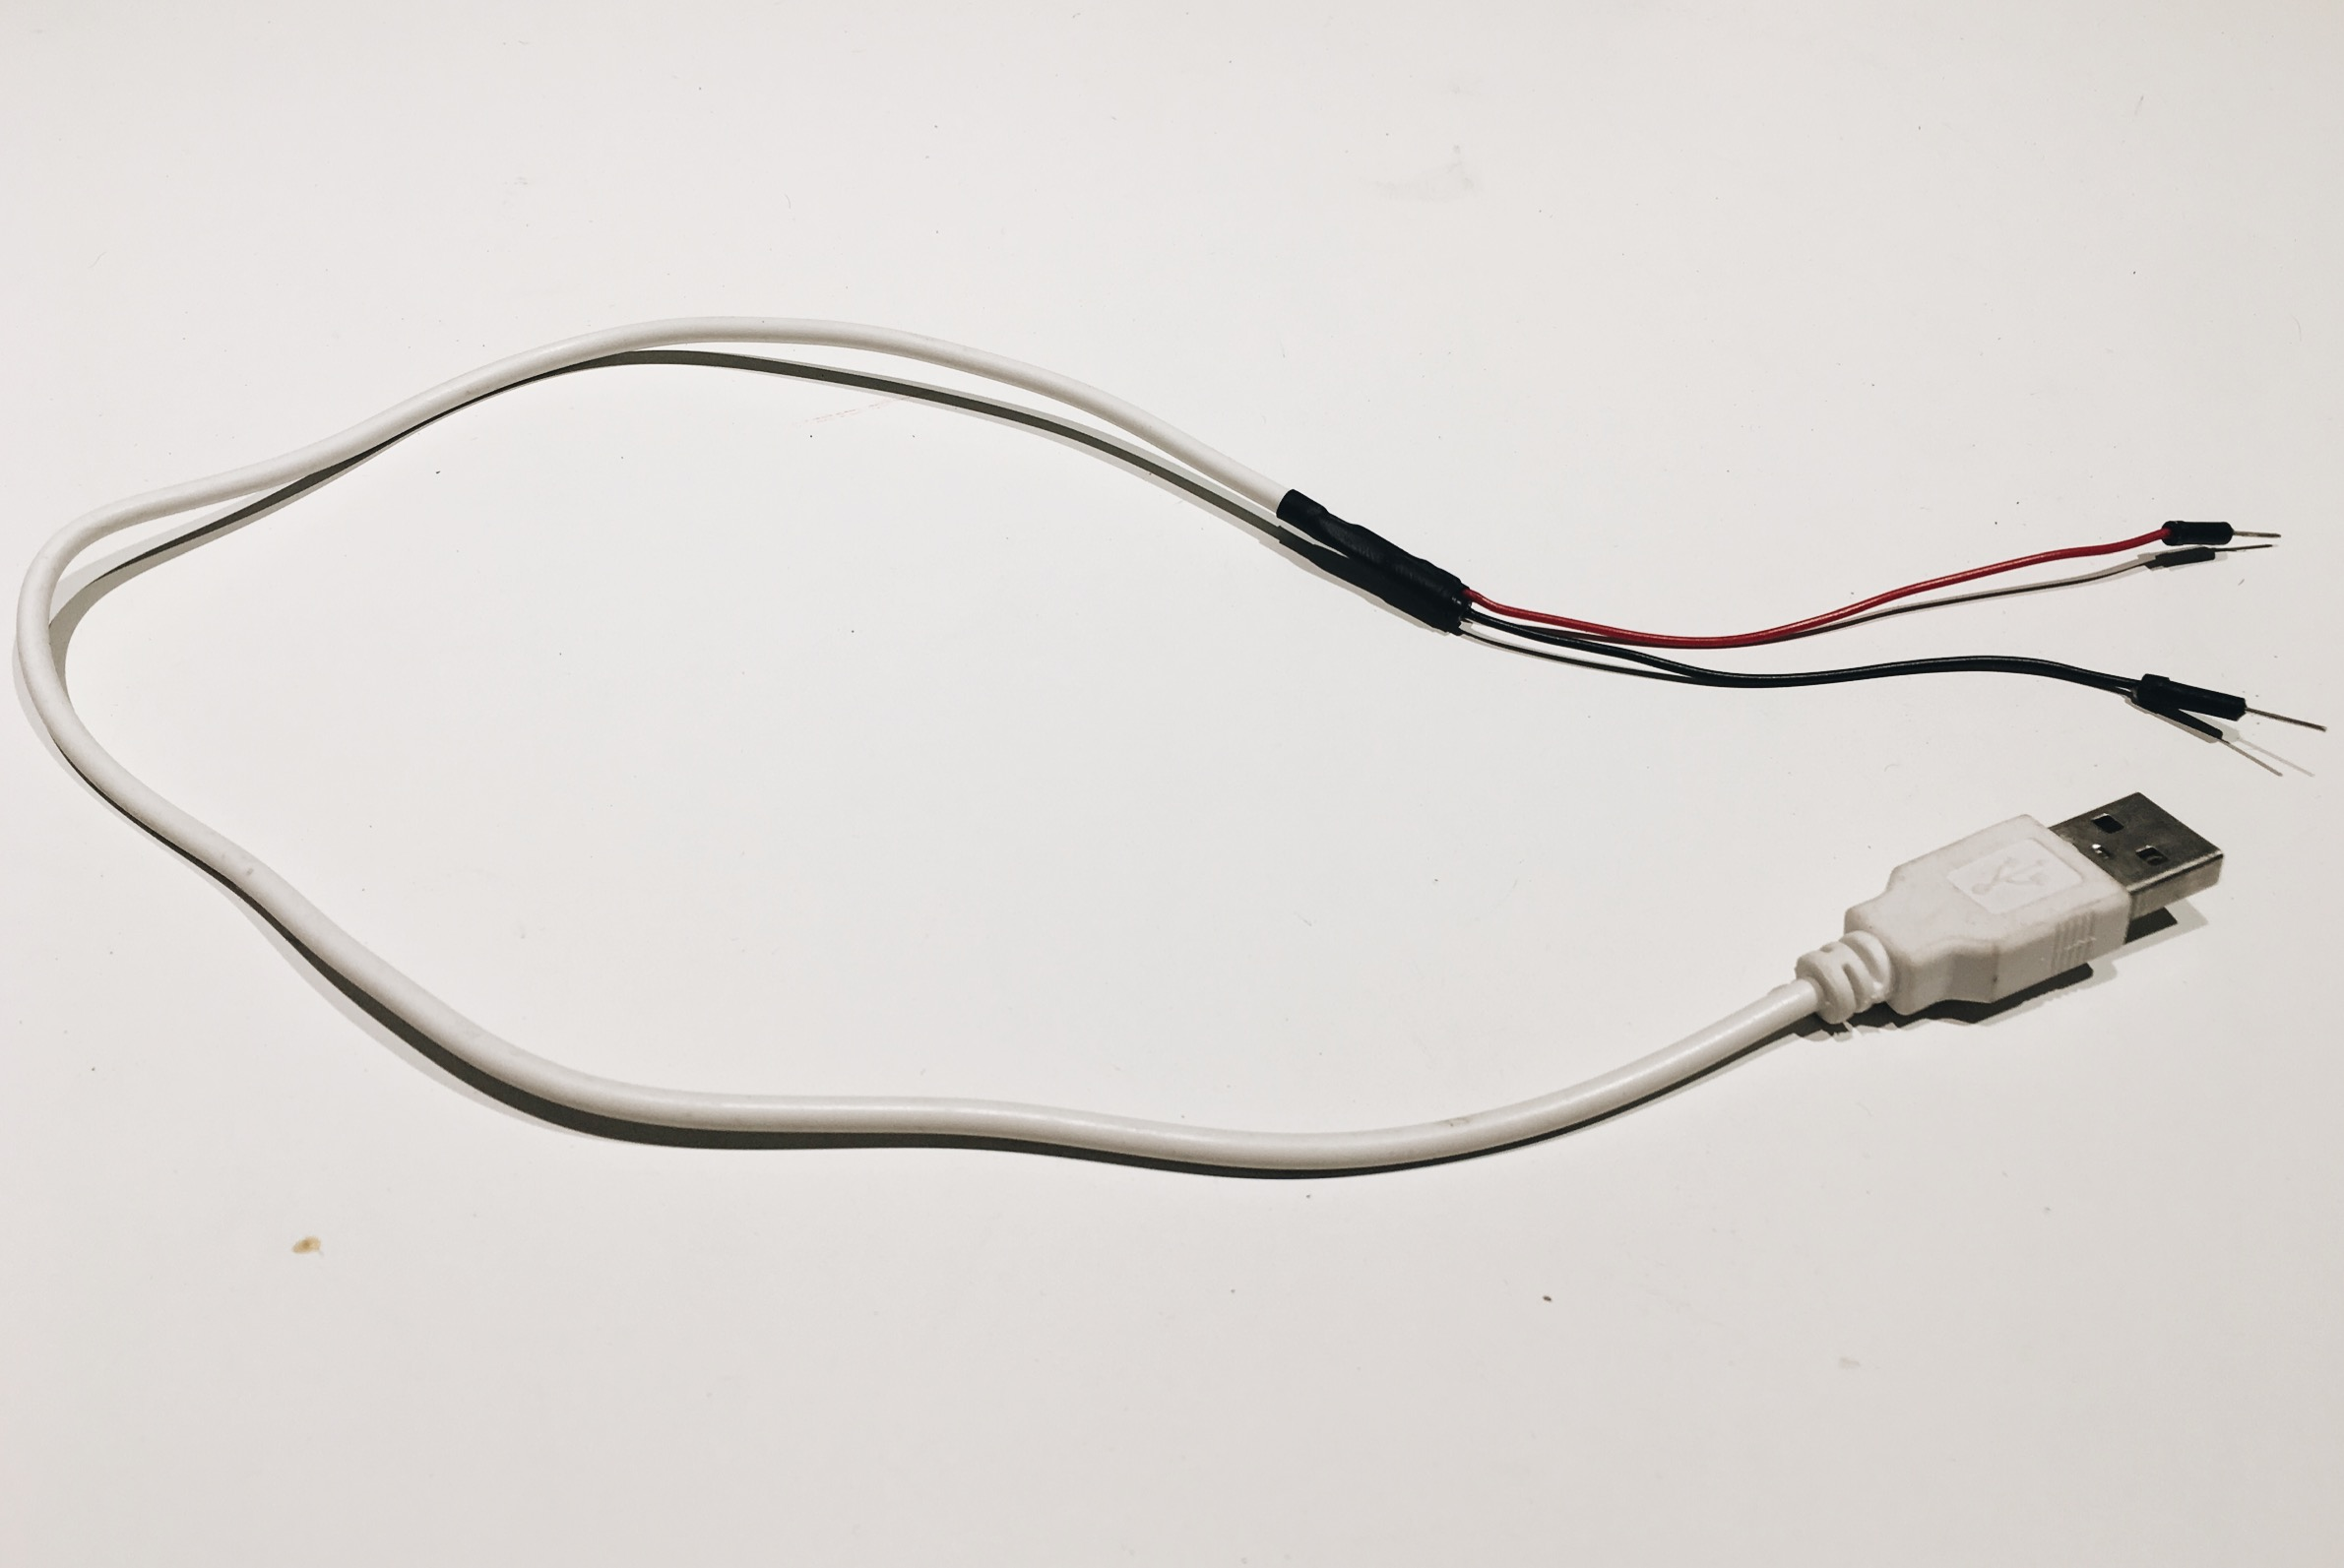 USB cable with stripped wires